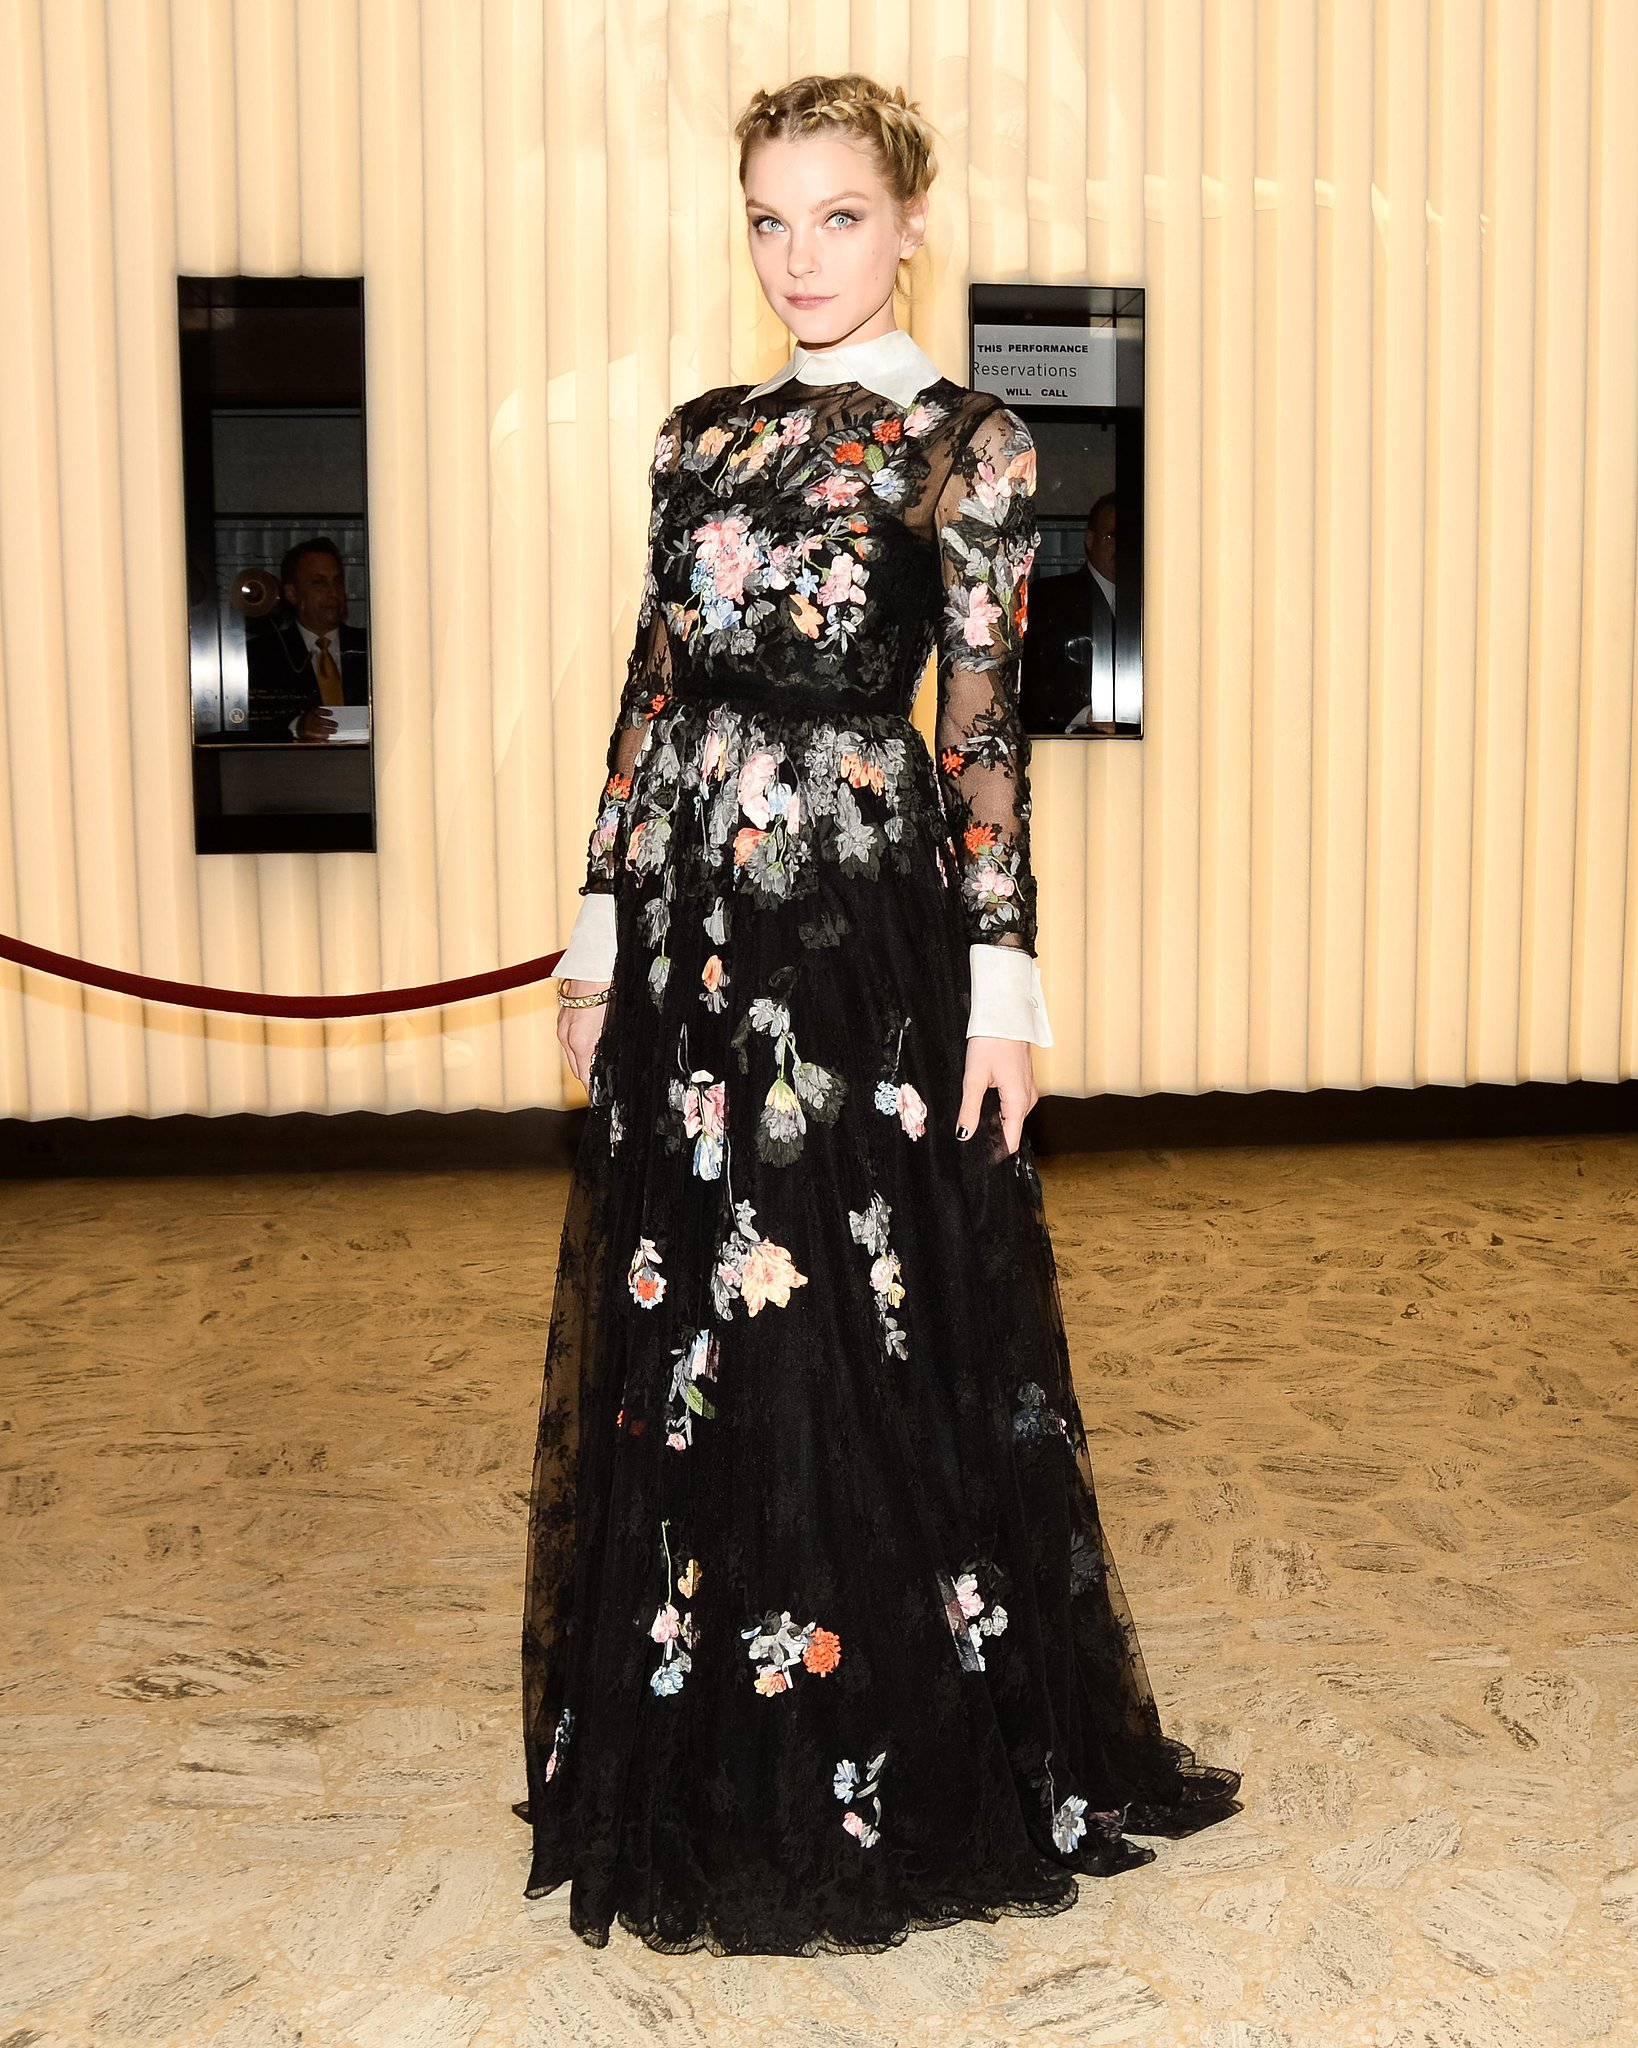 Jessica Stam graced the American Ballet Theatre opening night gala in an embroidered floral gown.